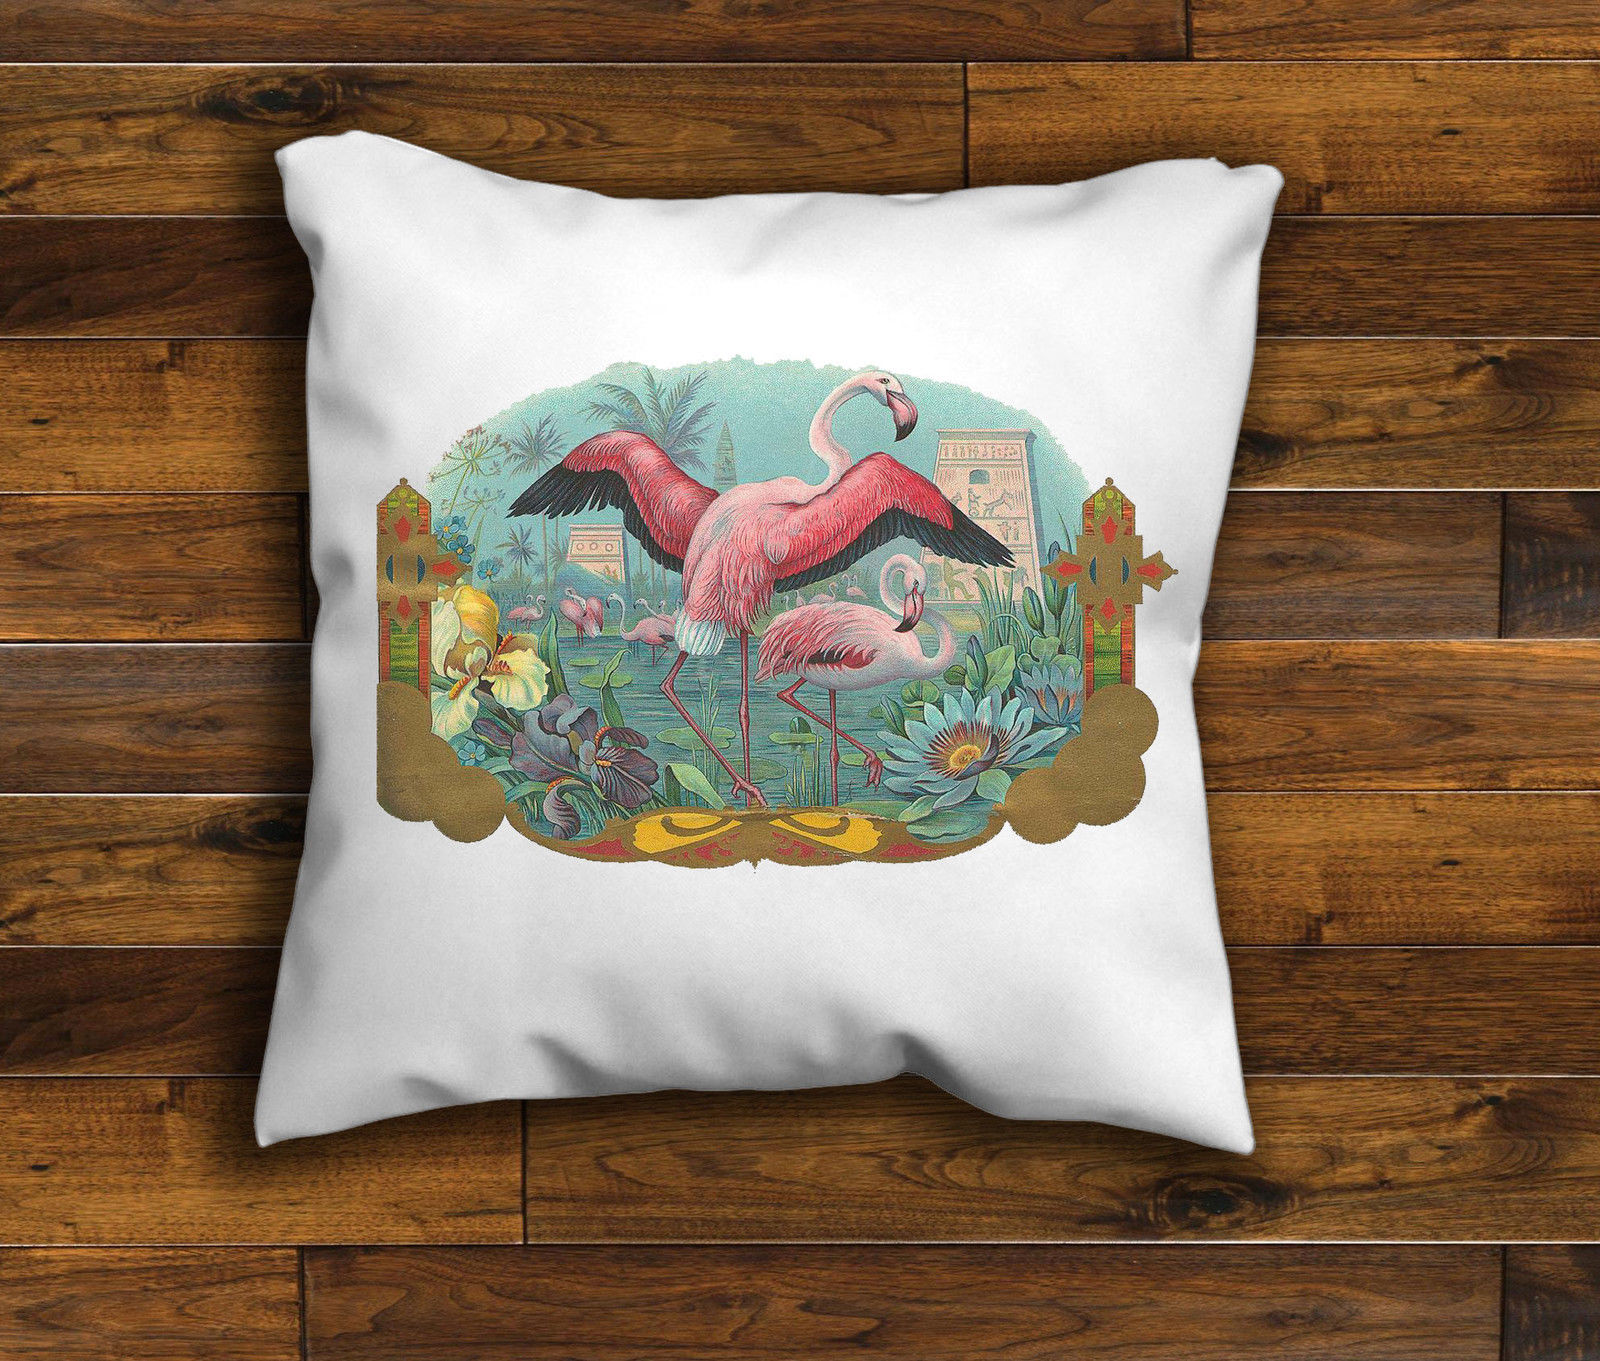 Retro Cushions Vintage Retro Flamingo Design Cushion Cover Handmade